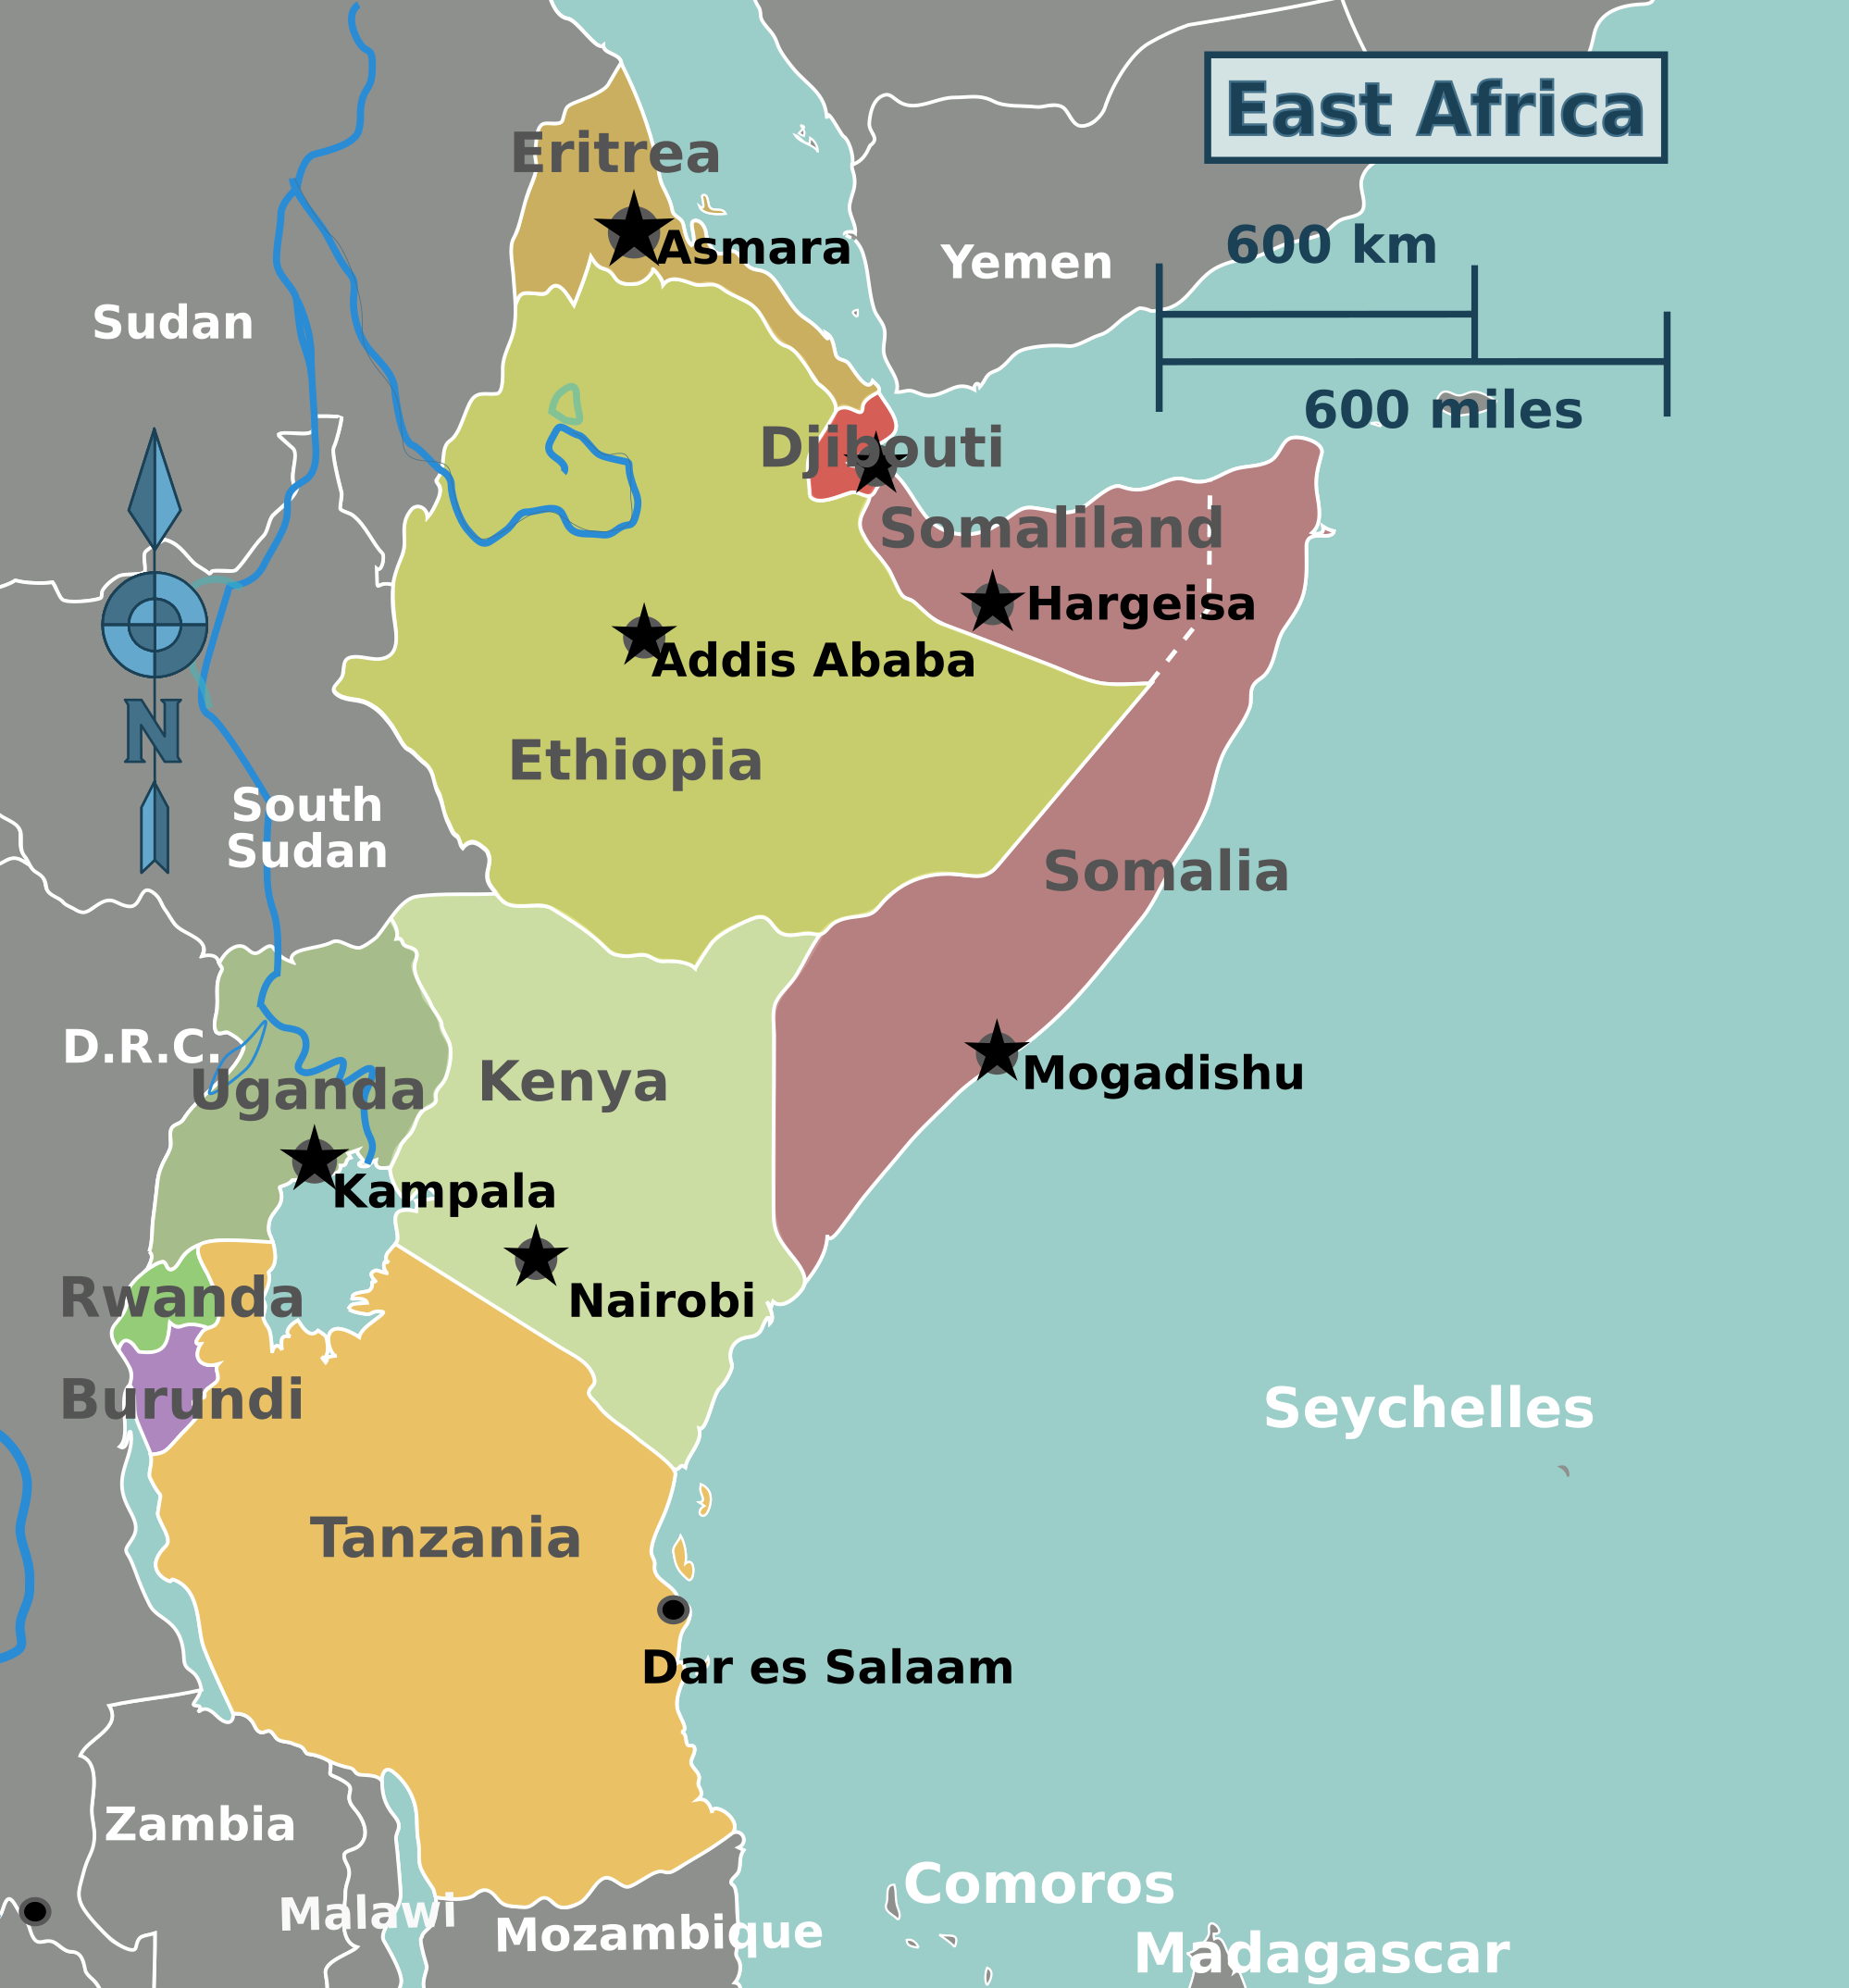 FileEast Africa Regions Mappng Wikimedia Commons - Map of eastern africa